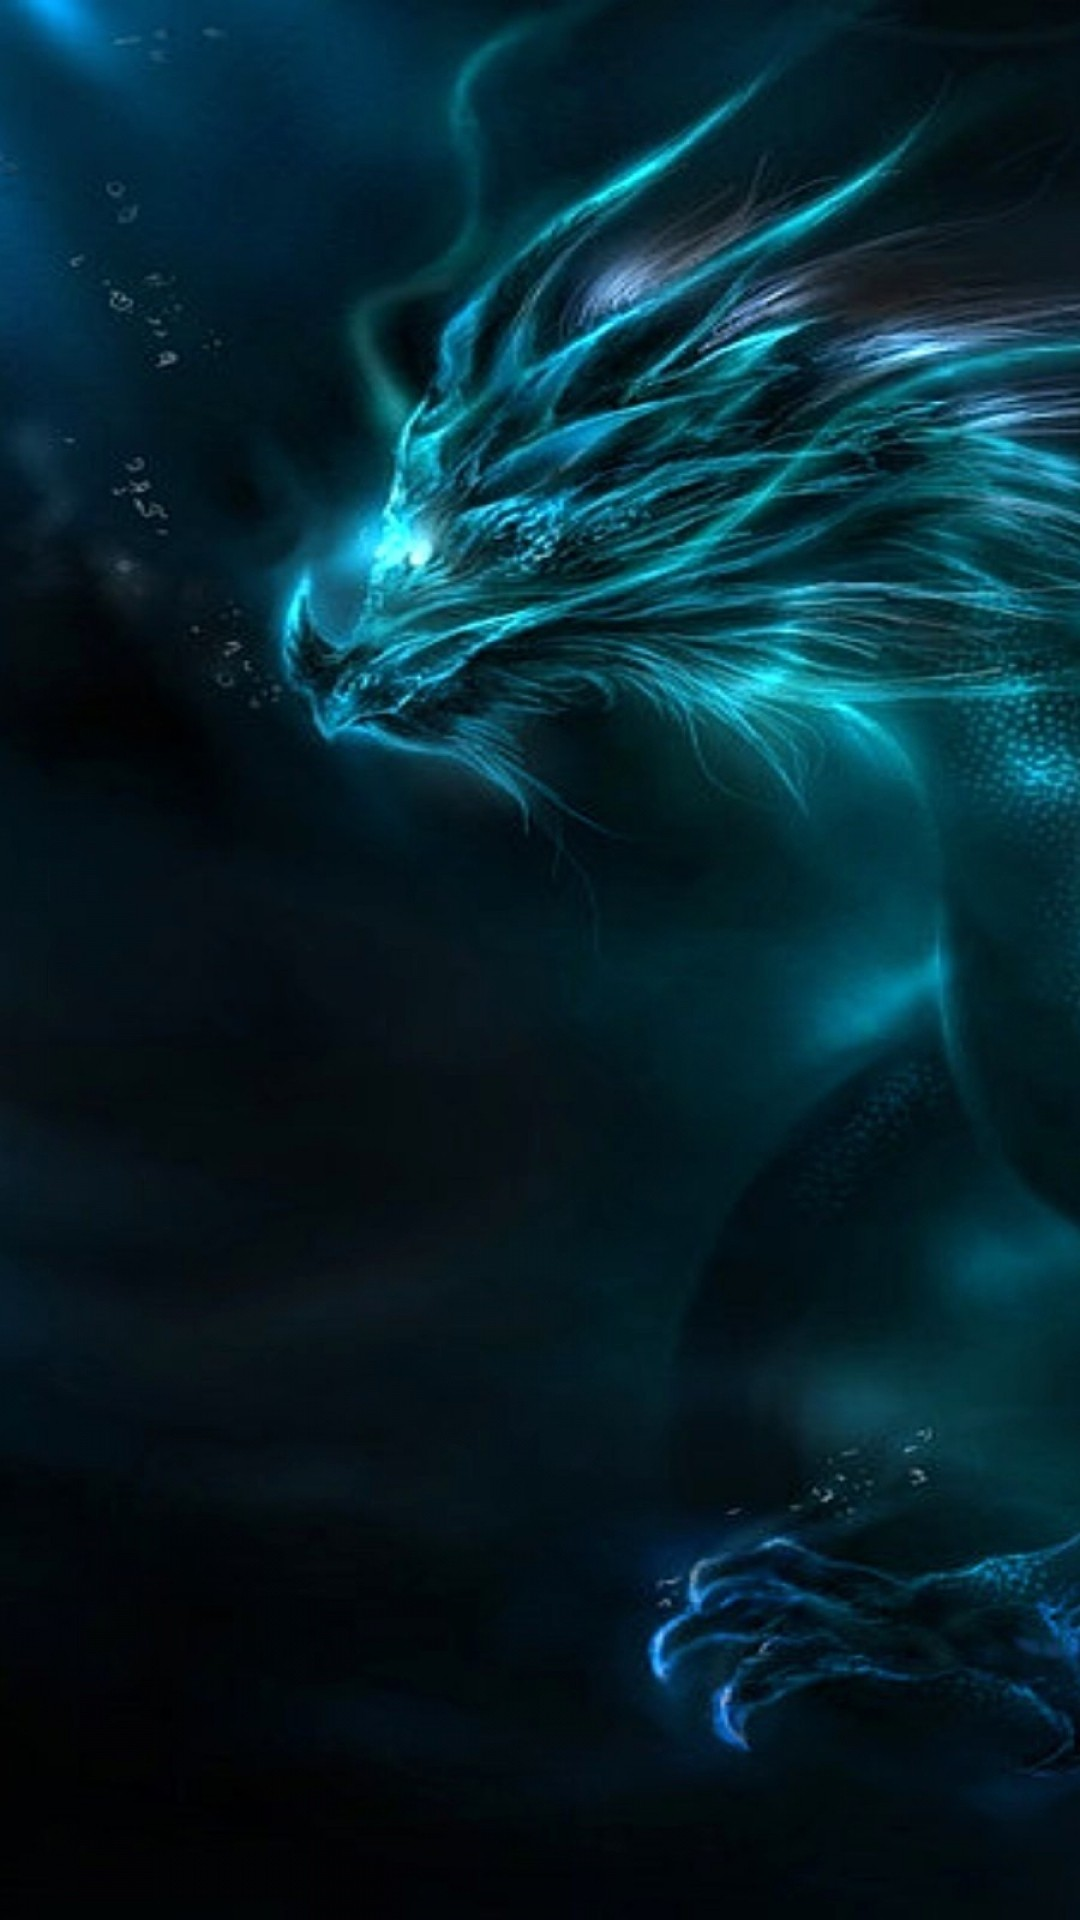 Dragon ios wallpaper